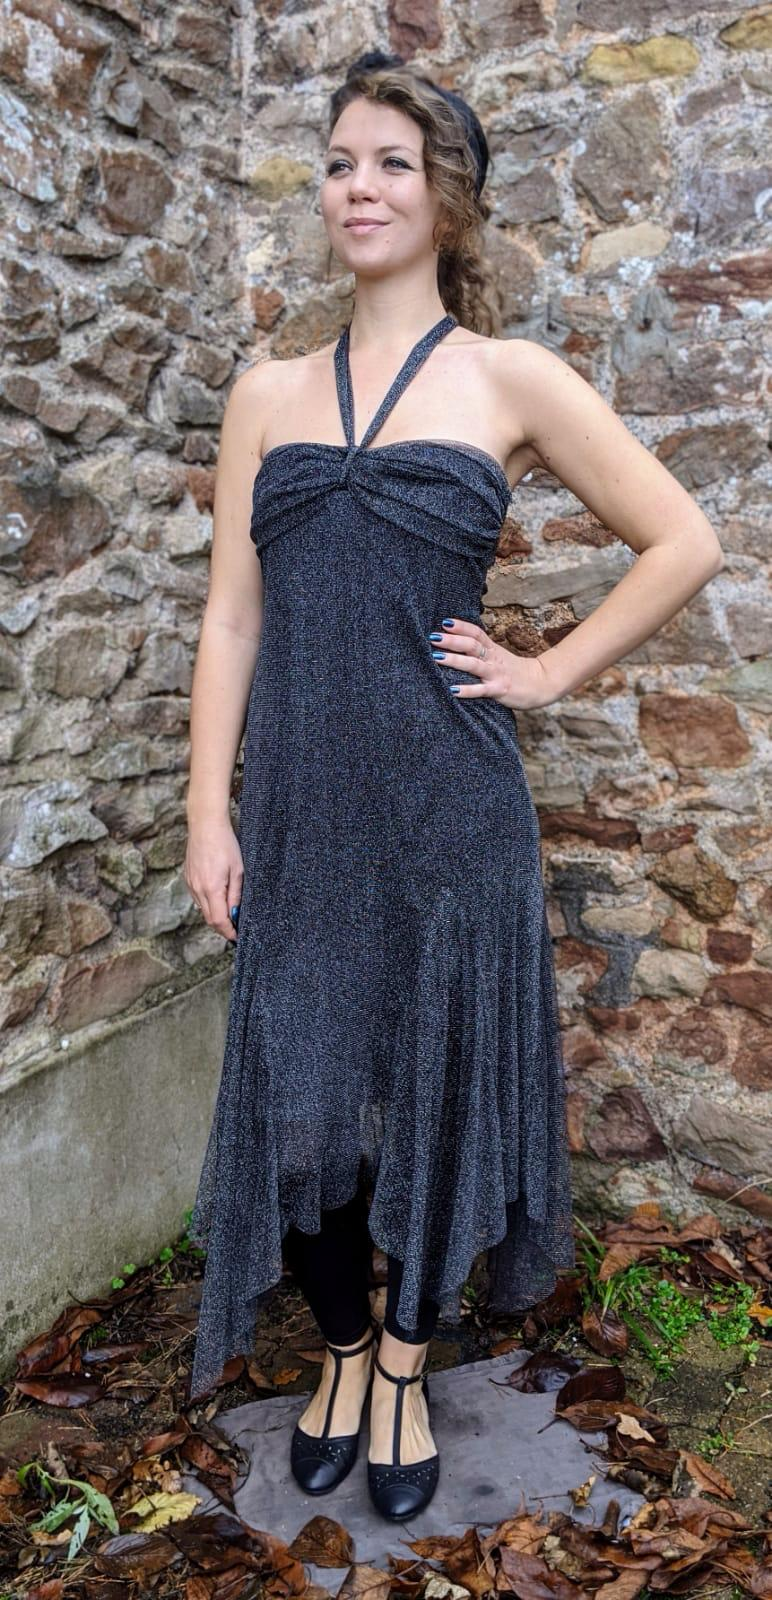 Black & Silver Sparkly Halter Neck Dress